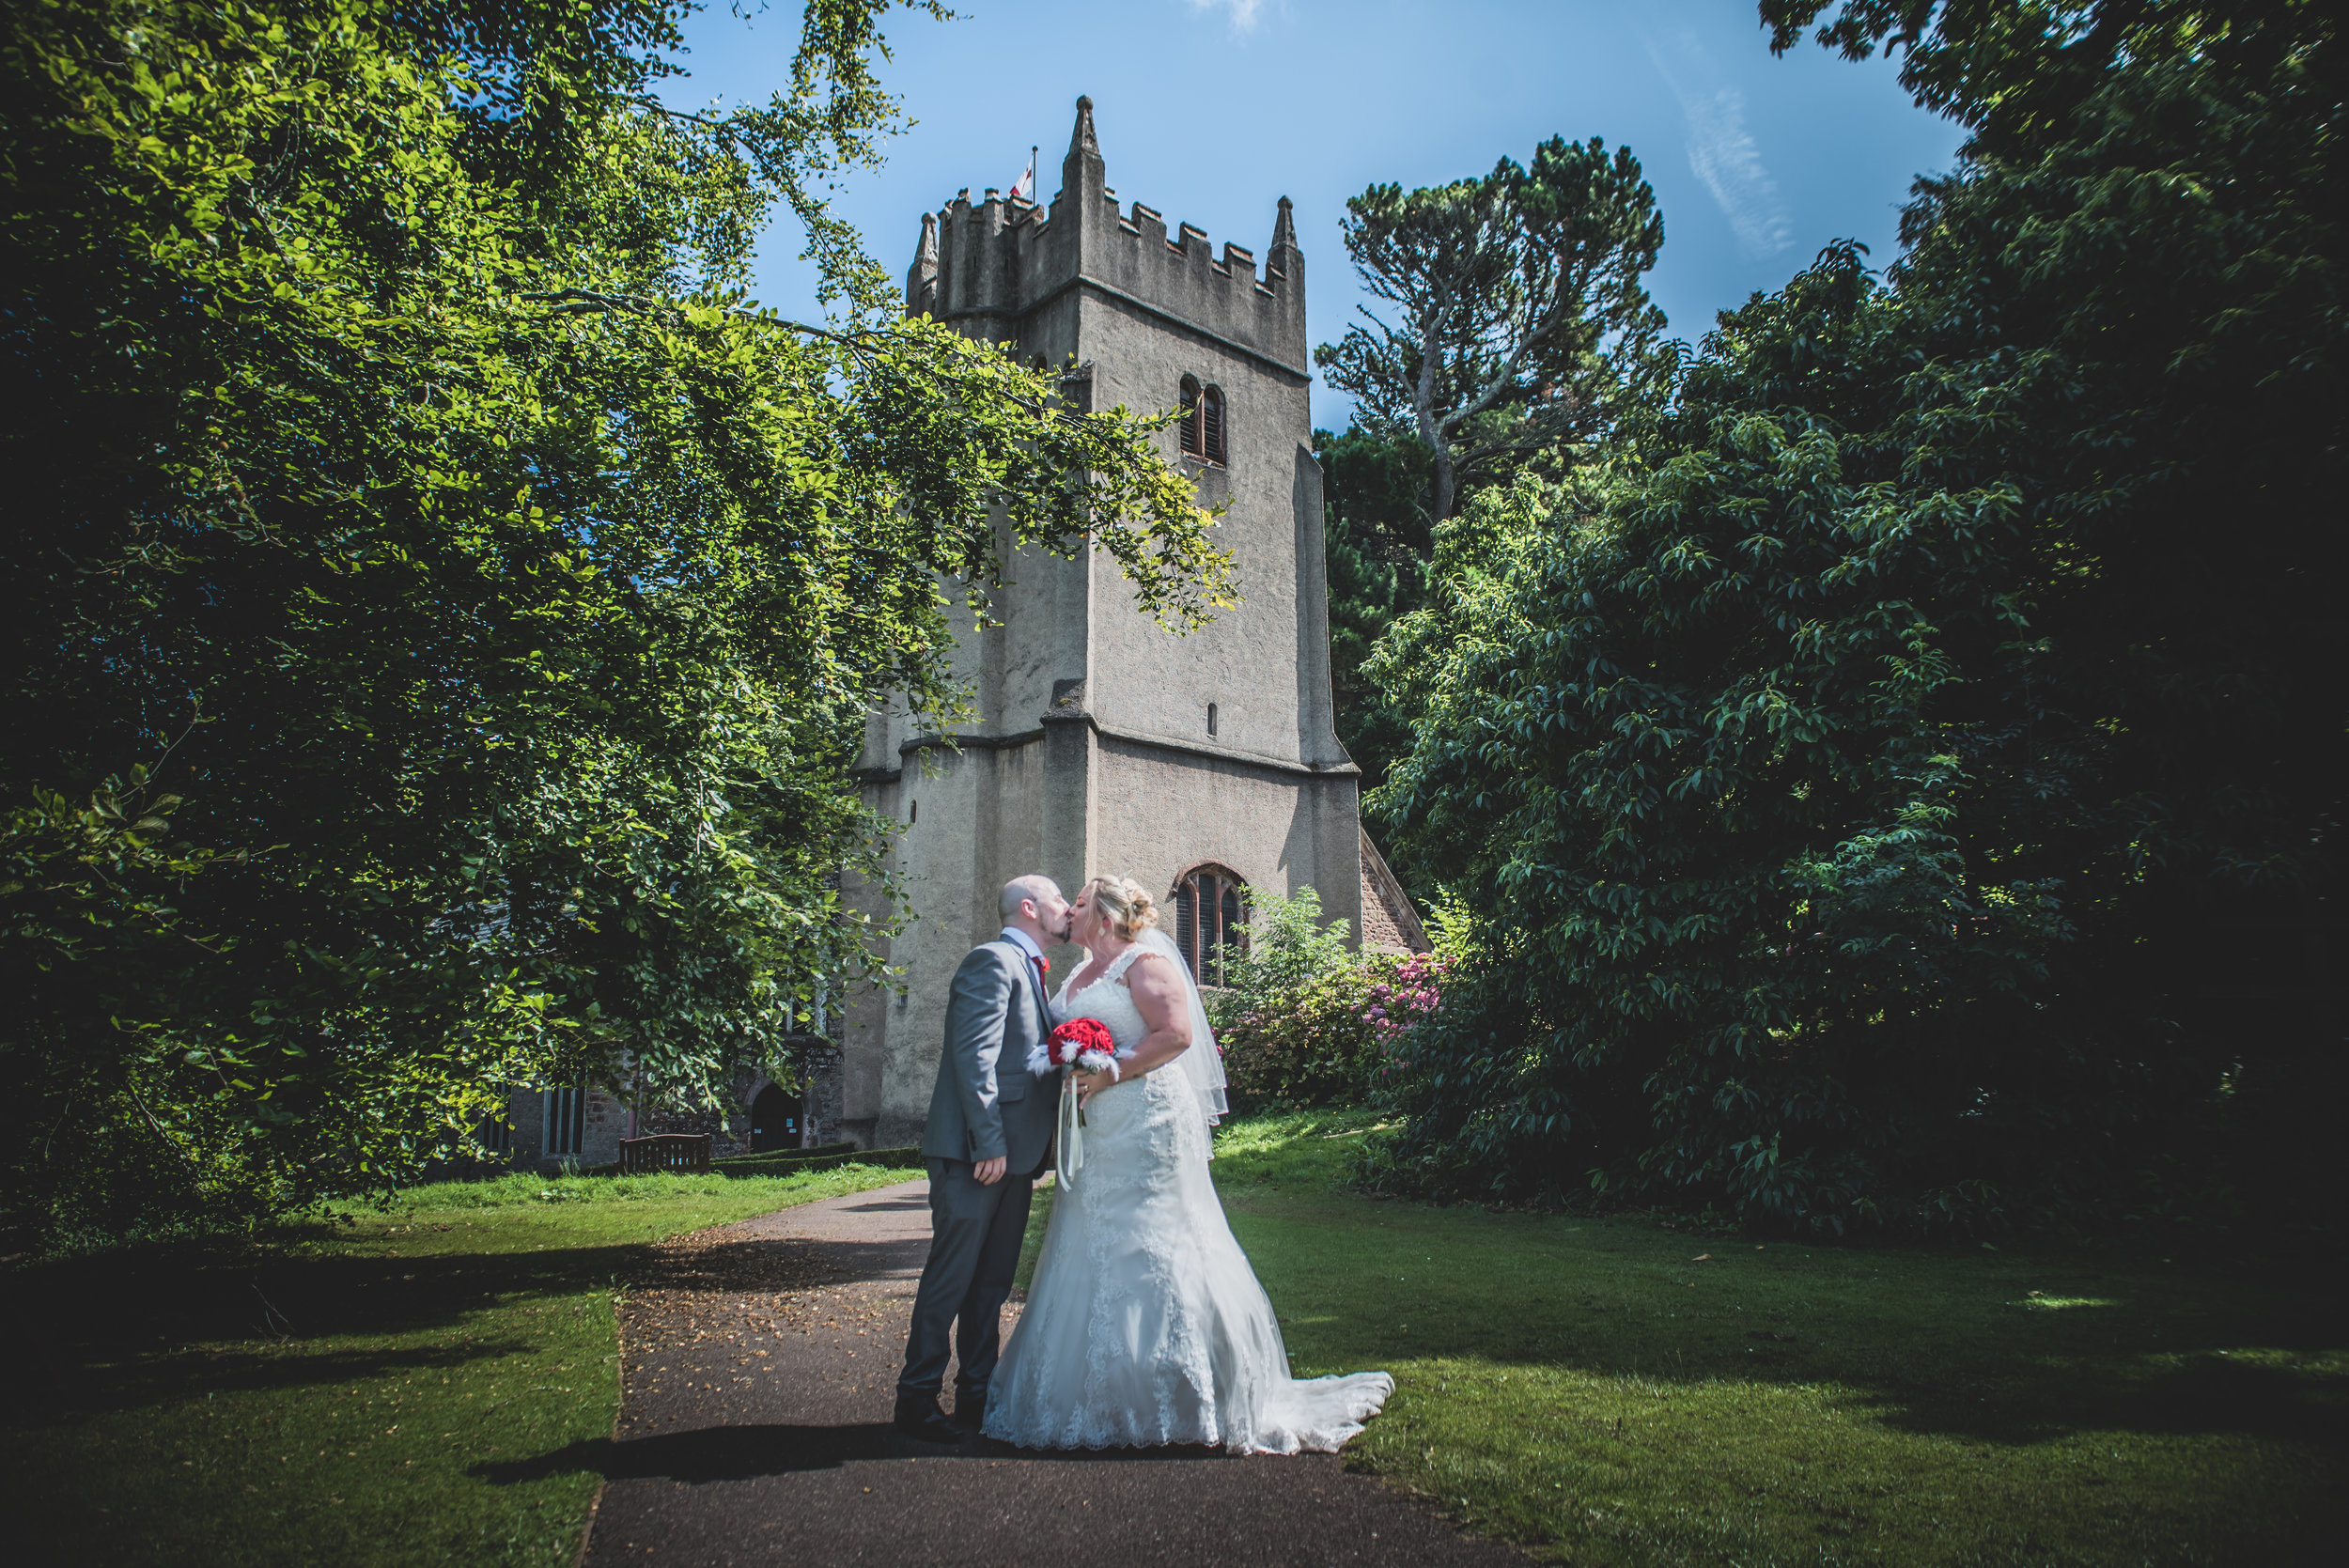 Mr & Mrs Kelly - Half Day Package